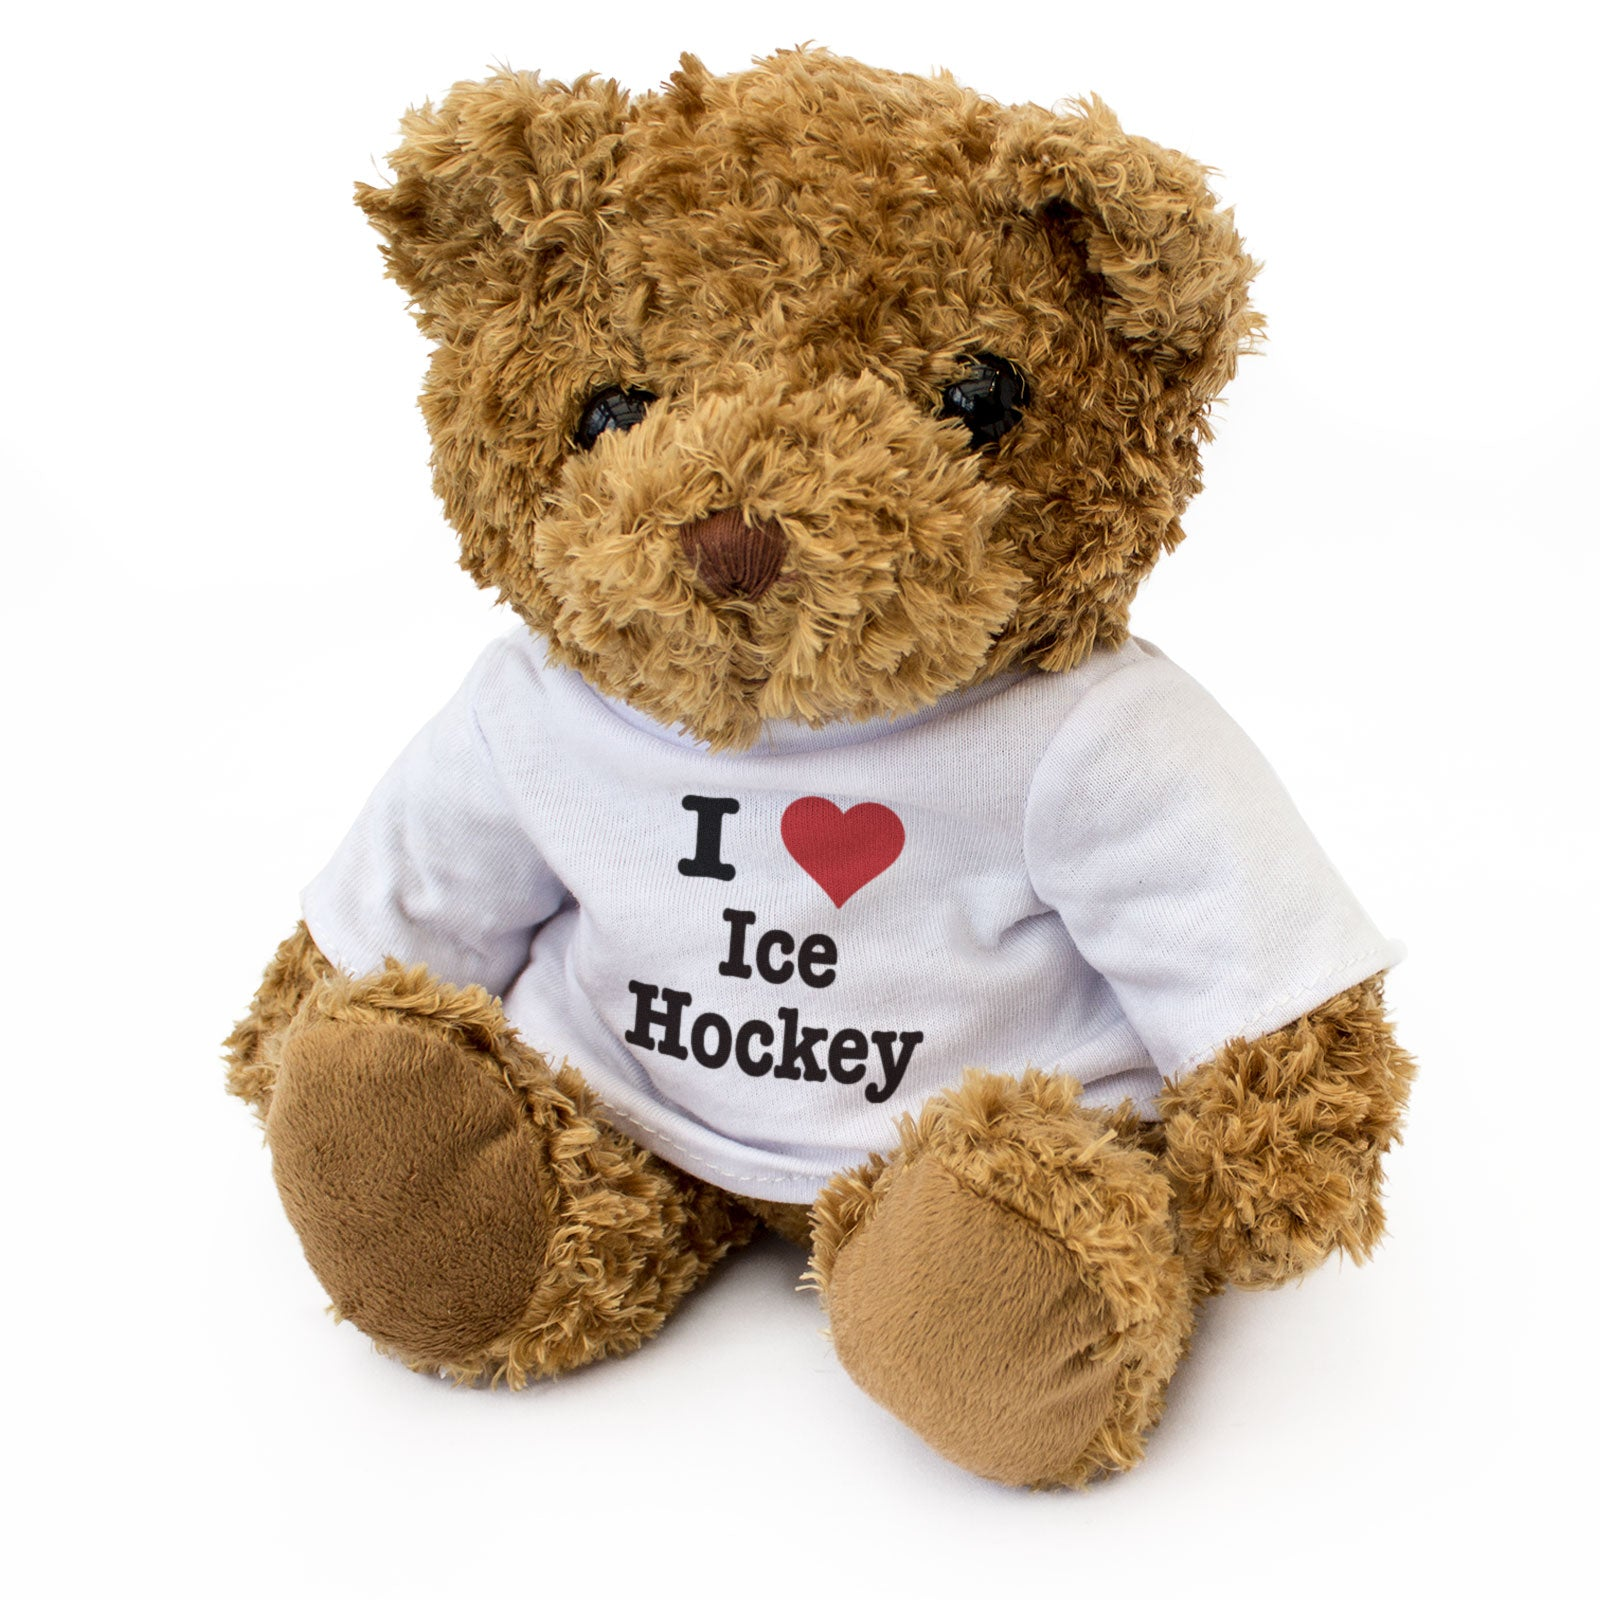 I Love Ice Hockey - Teddy Bear